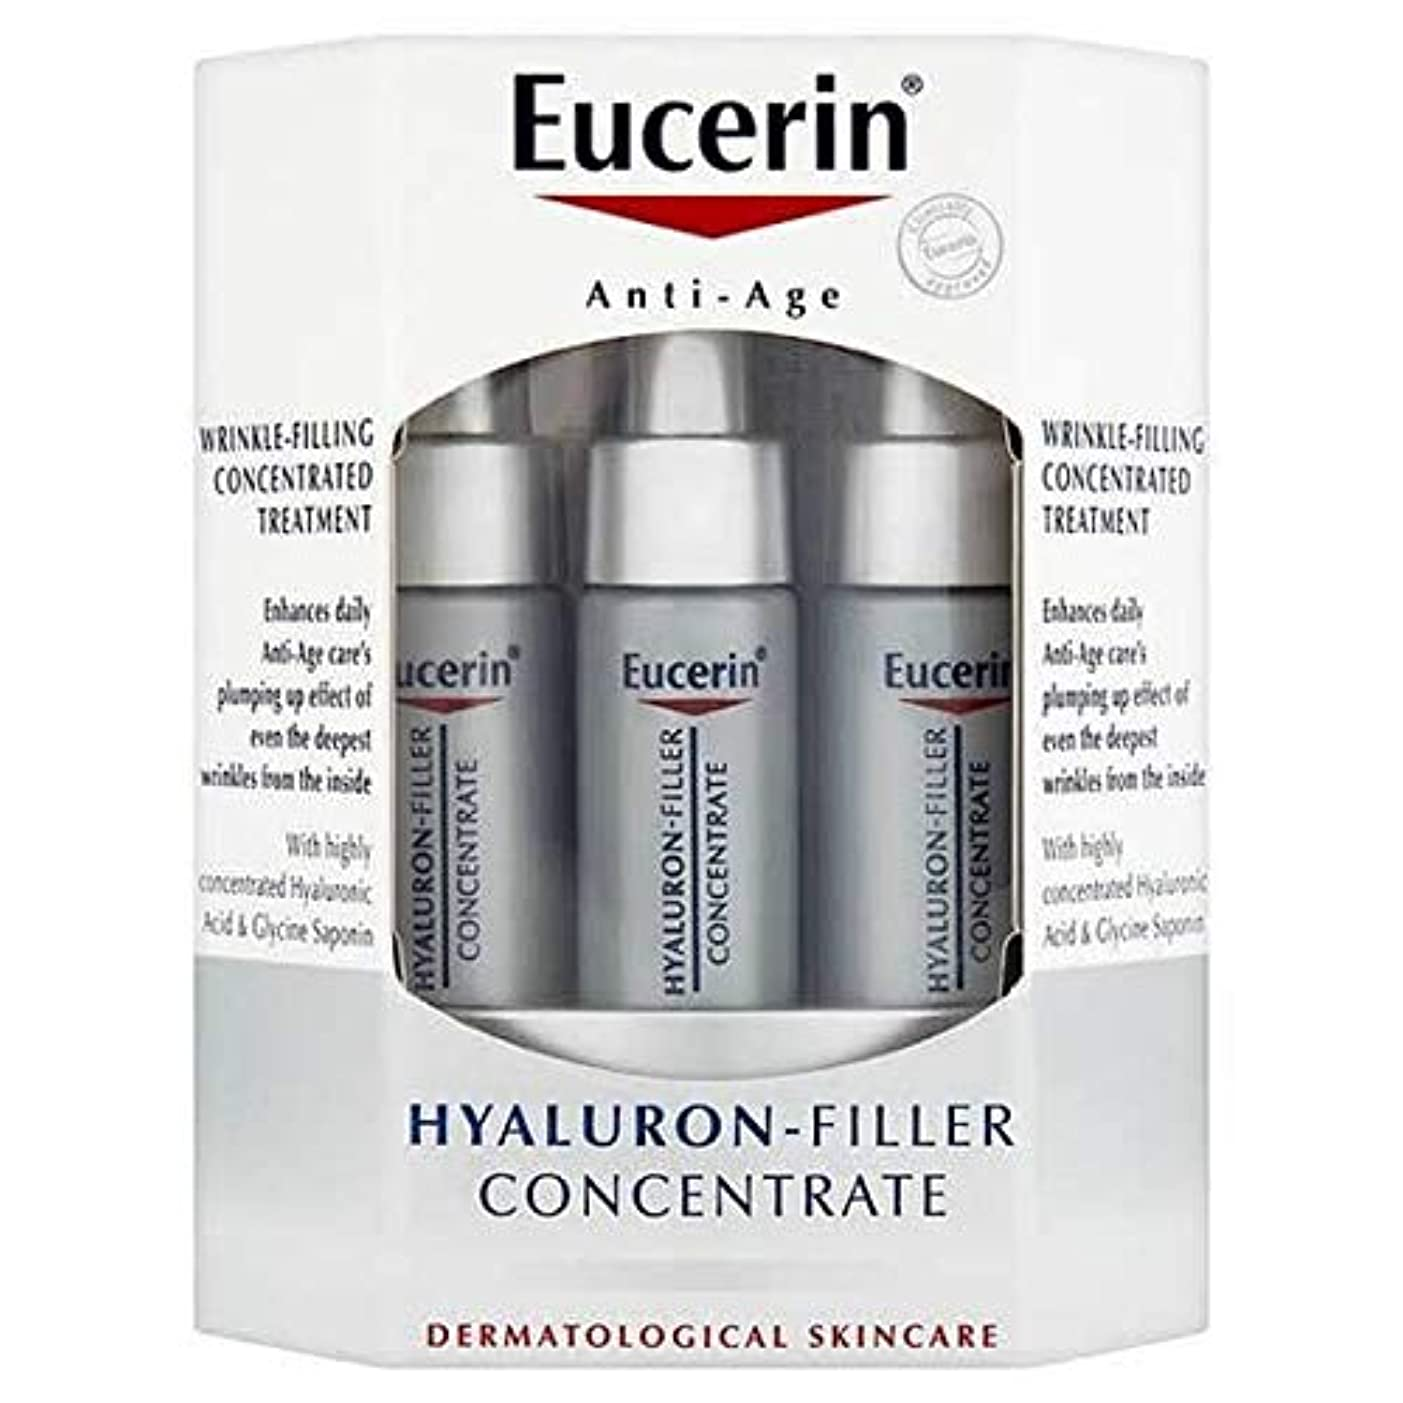 [Eucerin ] ユーセリンヒアルロンフィラー濃縮6X65Ml - Eucerin Hyaluron Filler Concentrate 6x65ml [並行輸入品]